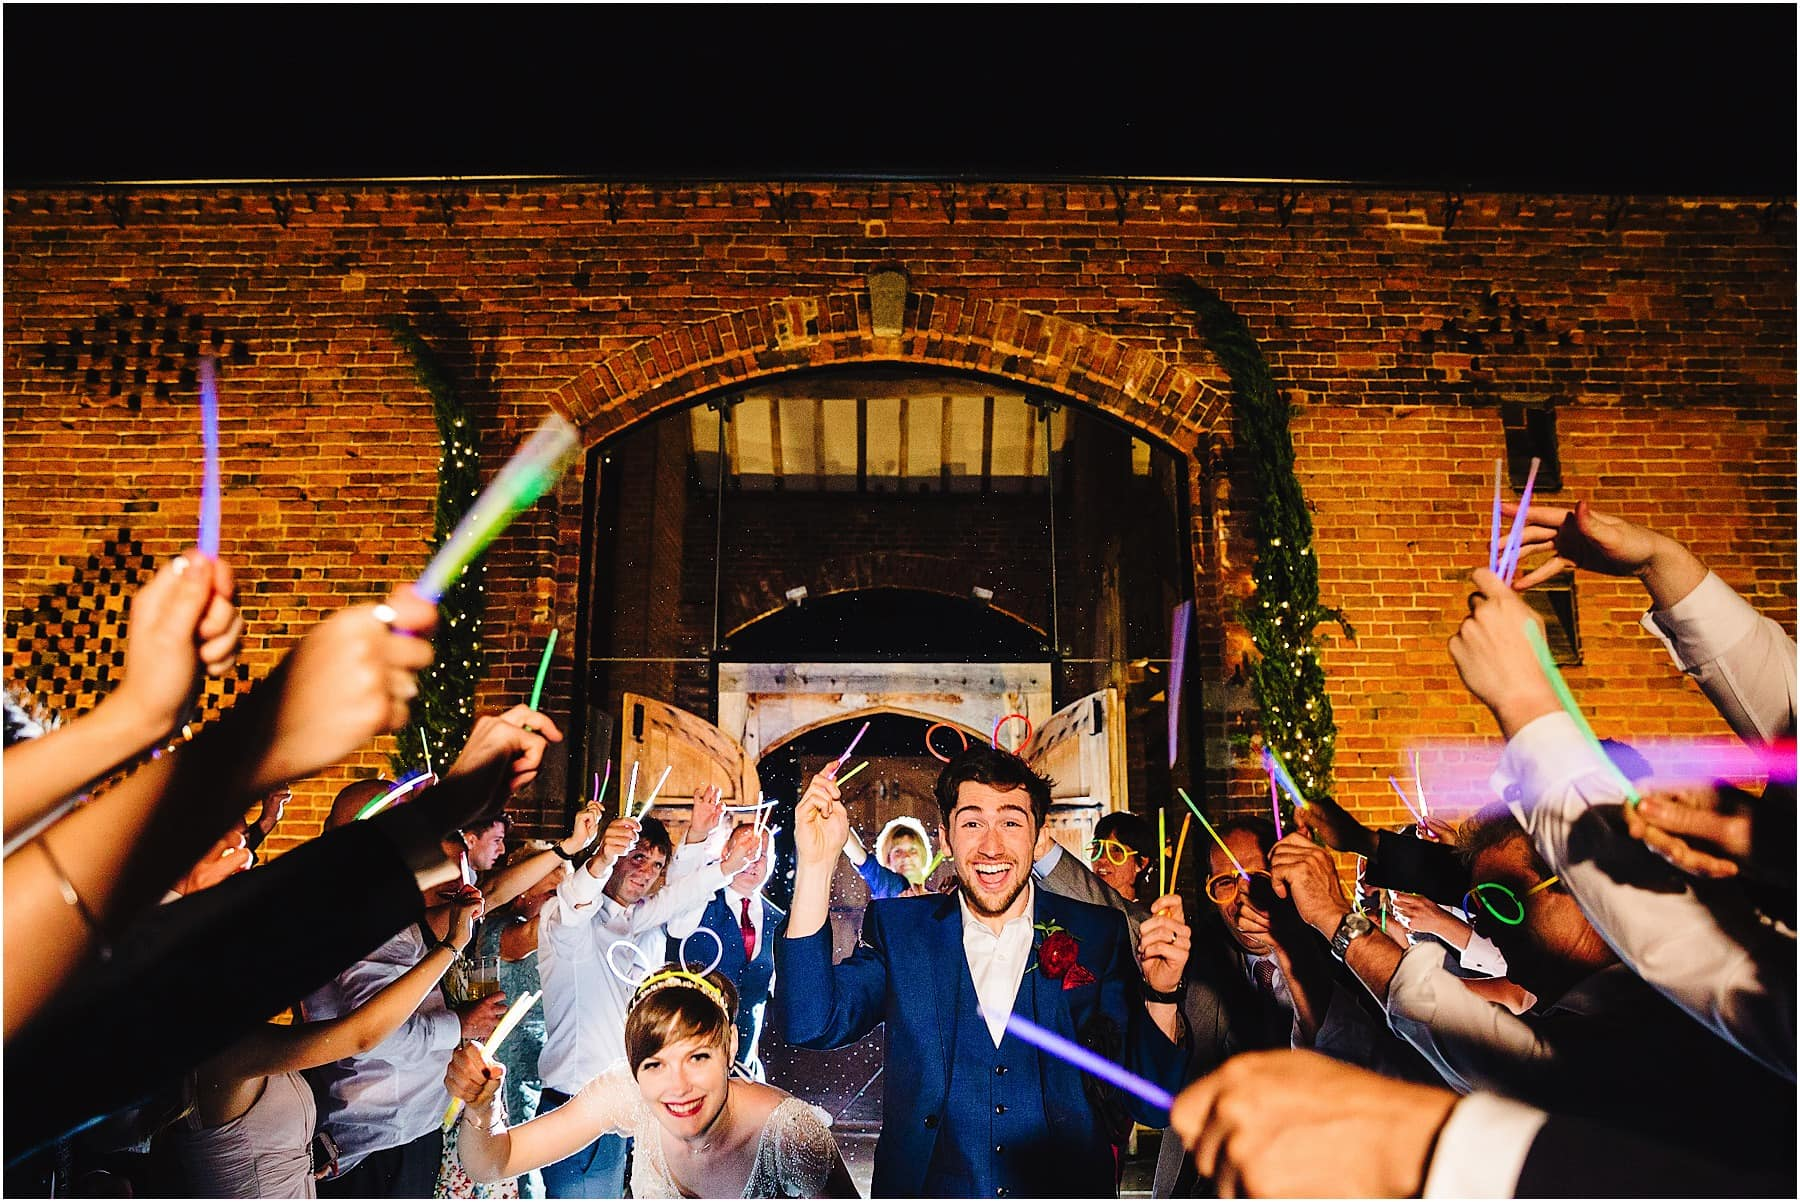 glow stick exit at wedding